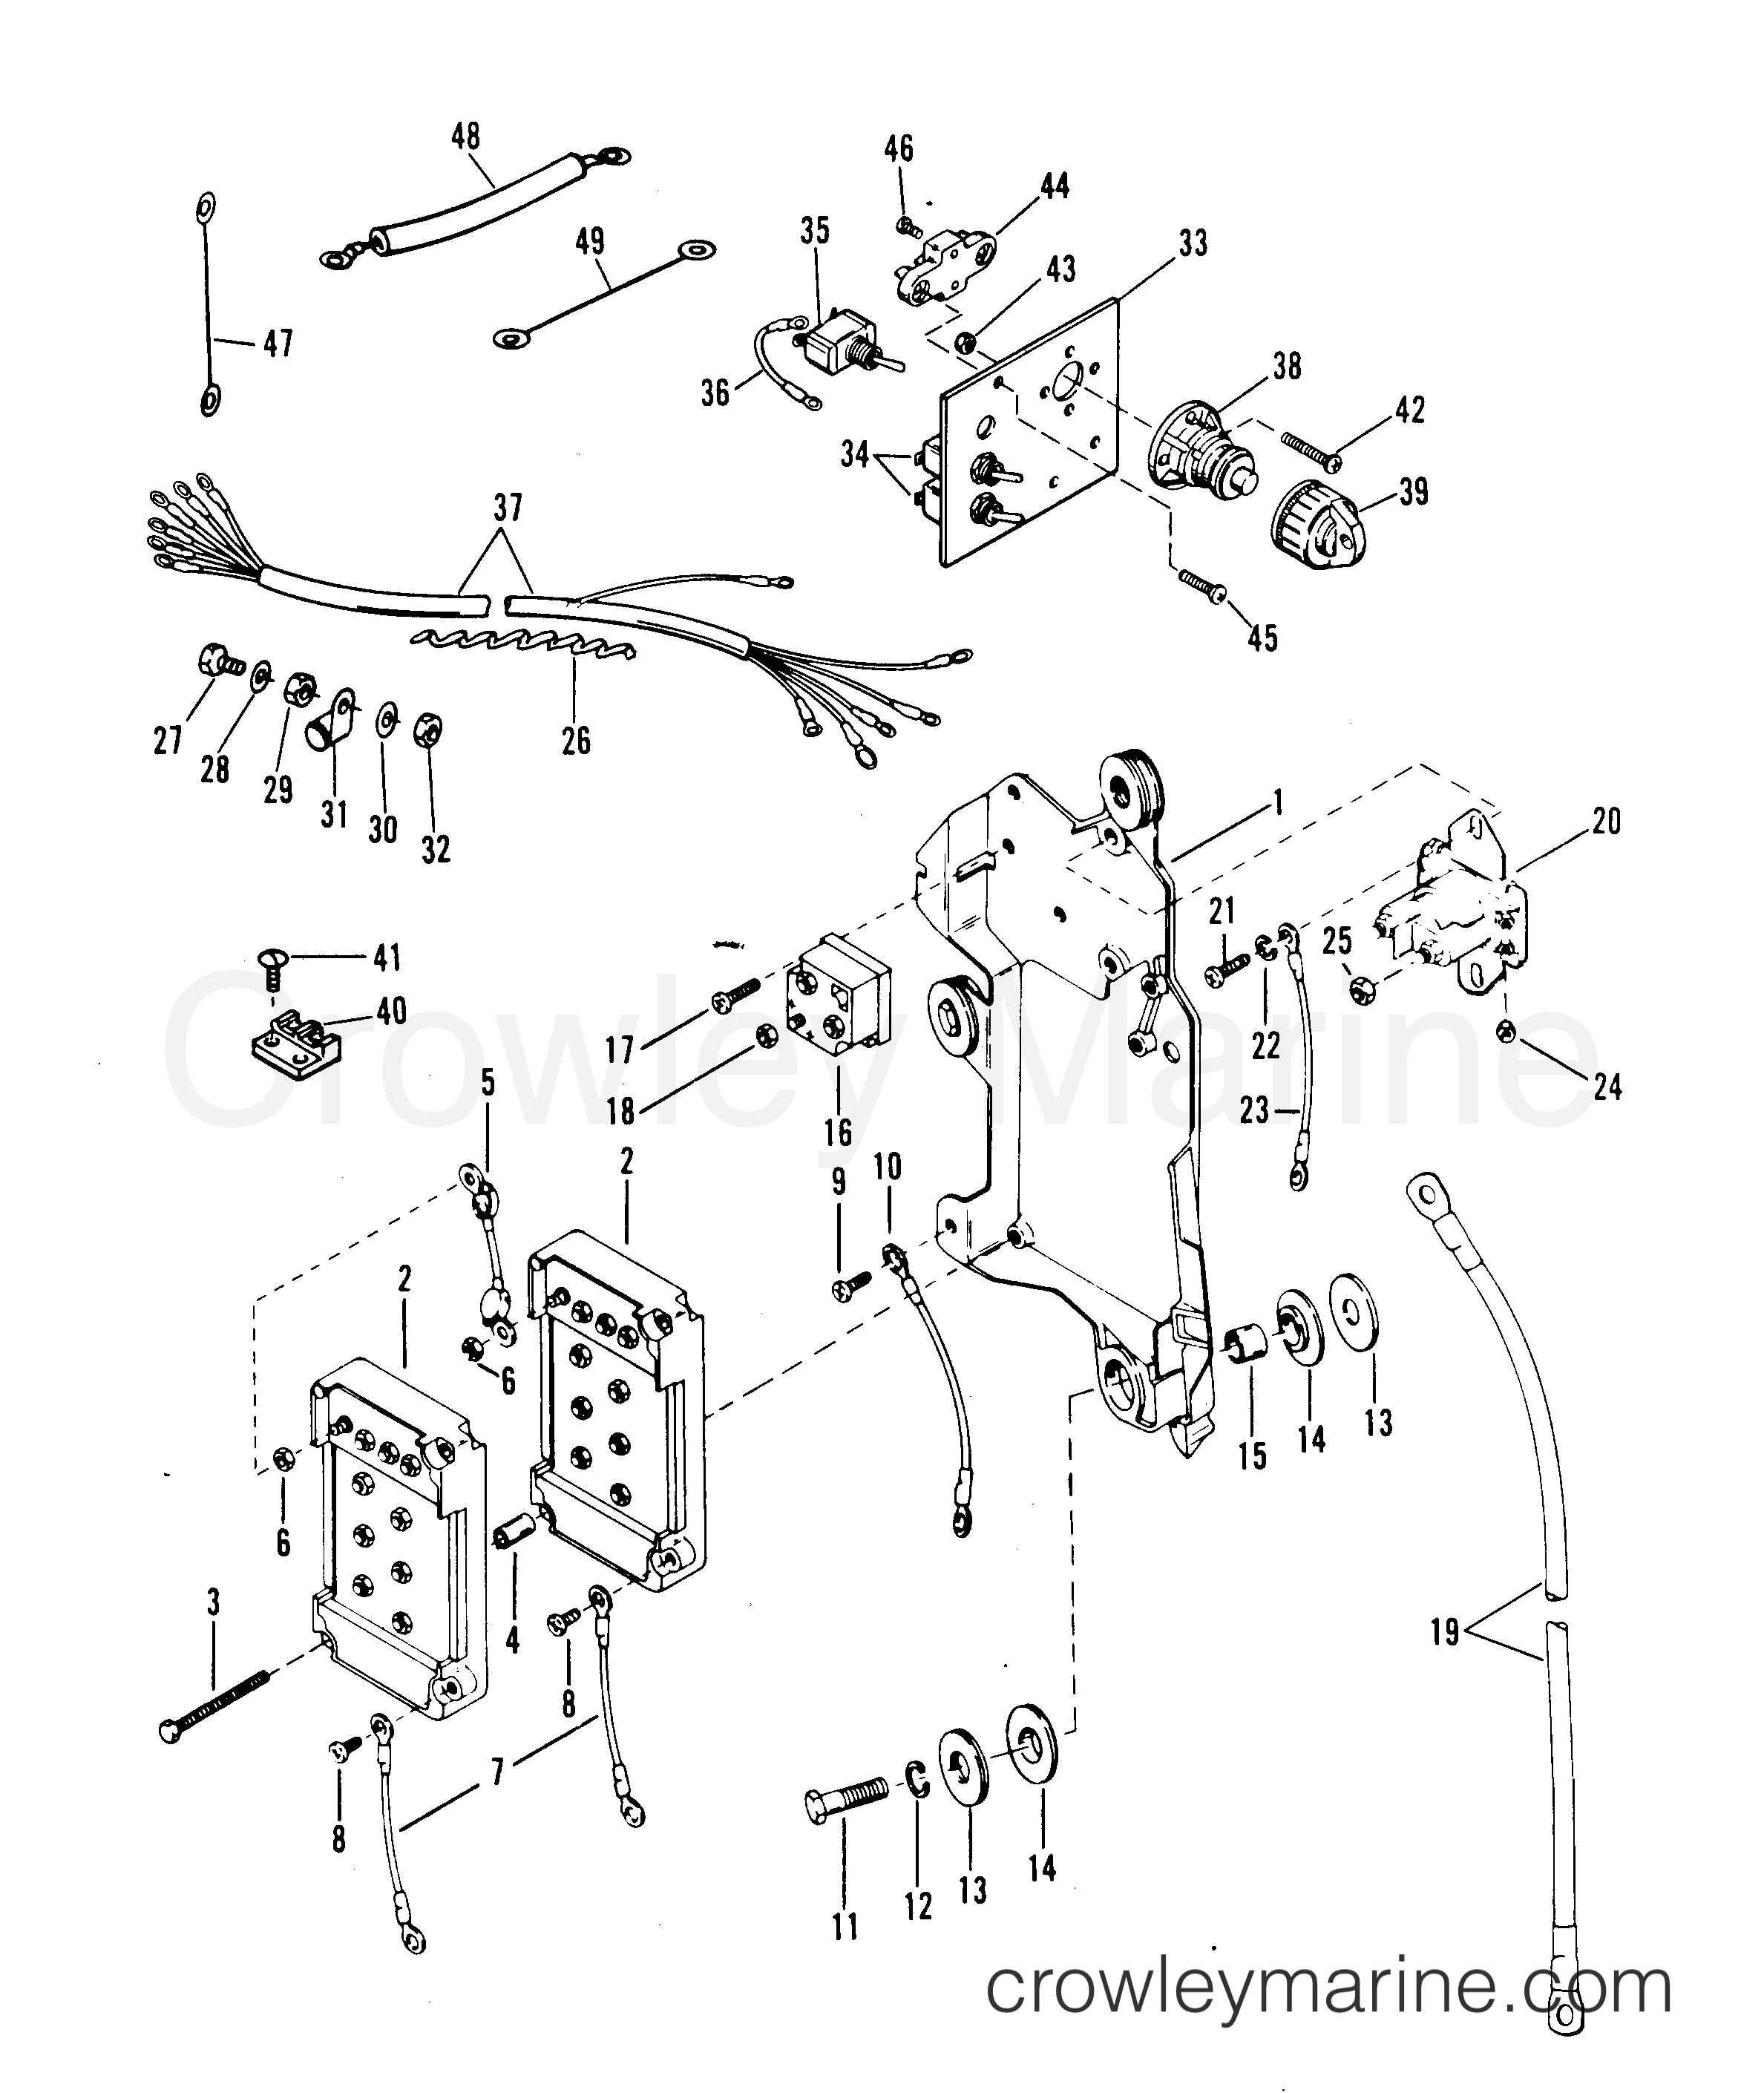 Starter Wiring In A Race - Wiring Schematics on